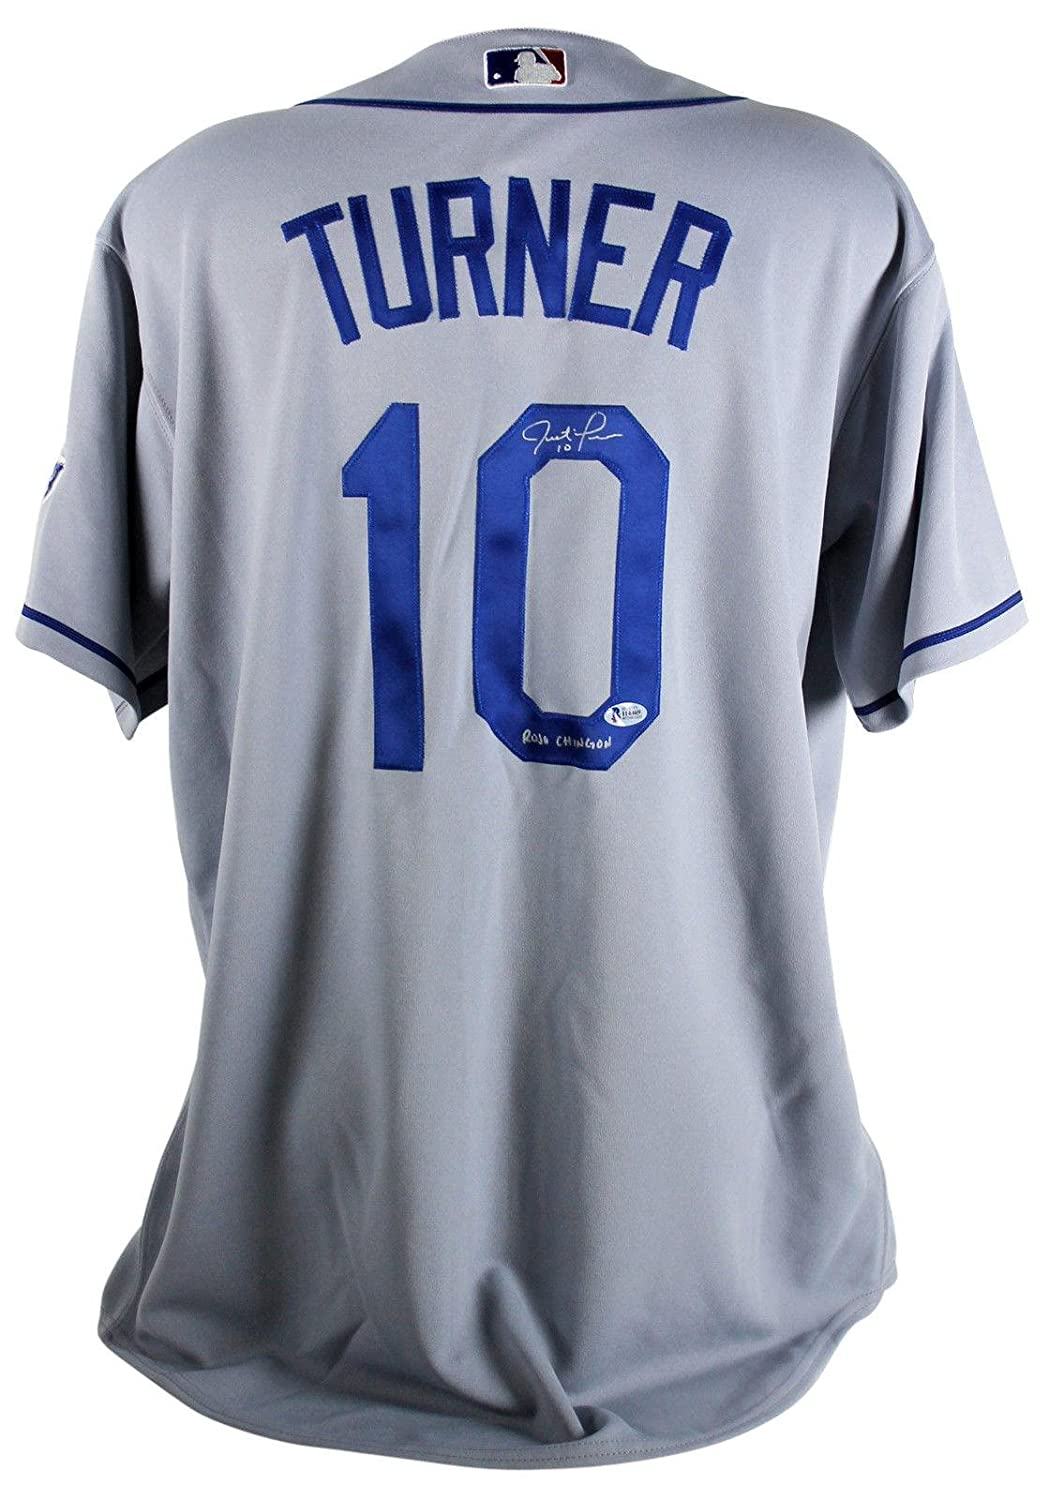 brand new 82f18 9661d Dodgers Justin Turner Rojo Chingon Signed Gray Majestic ...